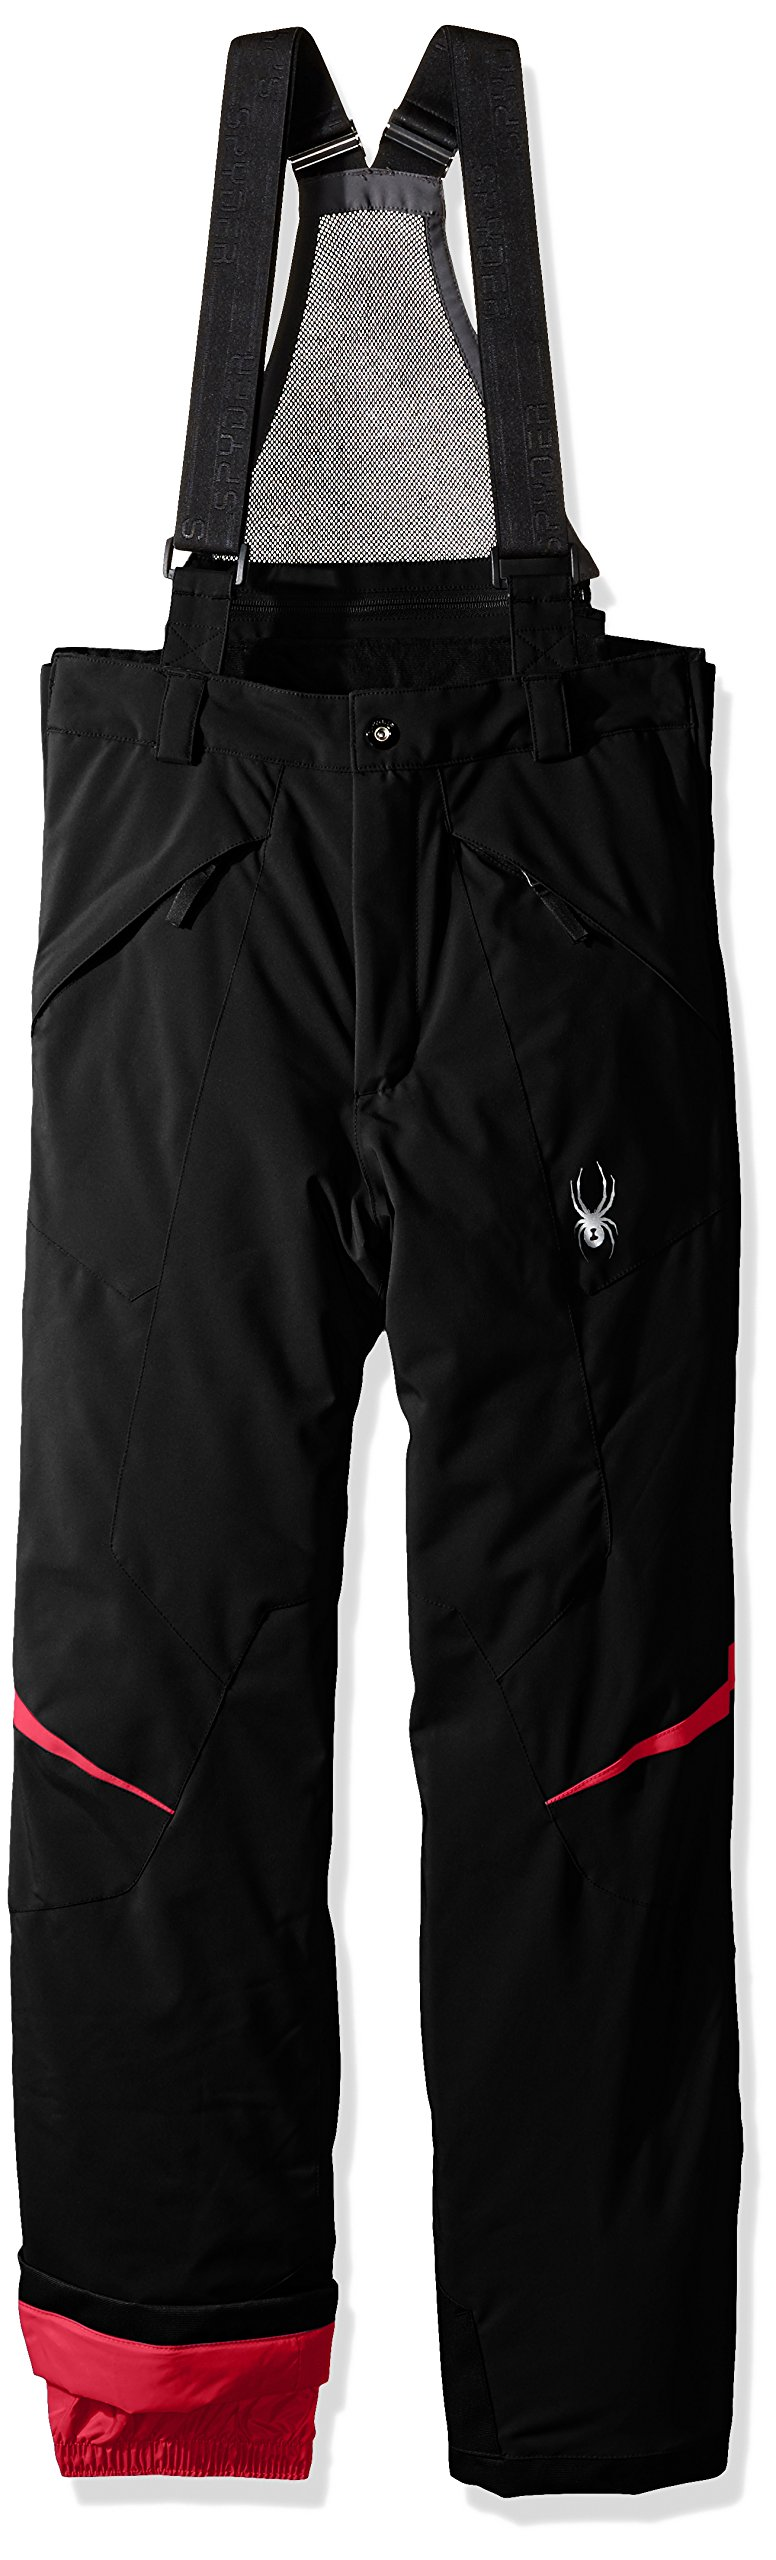 Spyder Boys Force Pants, Size 14, Black/Formula by Spyder